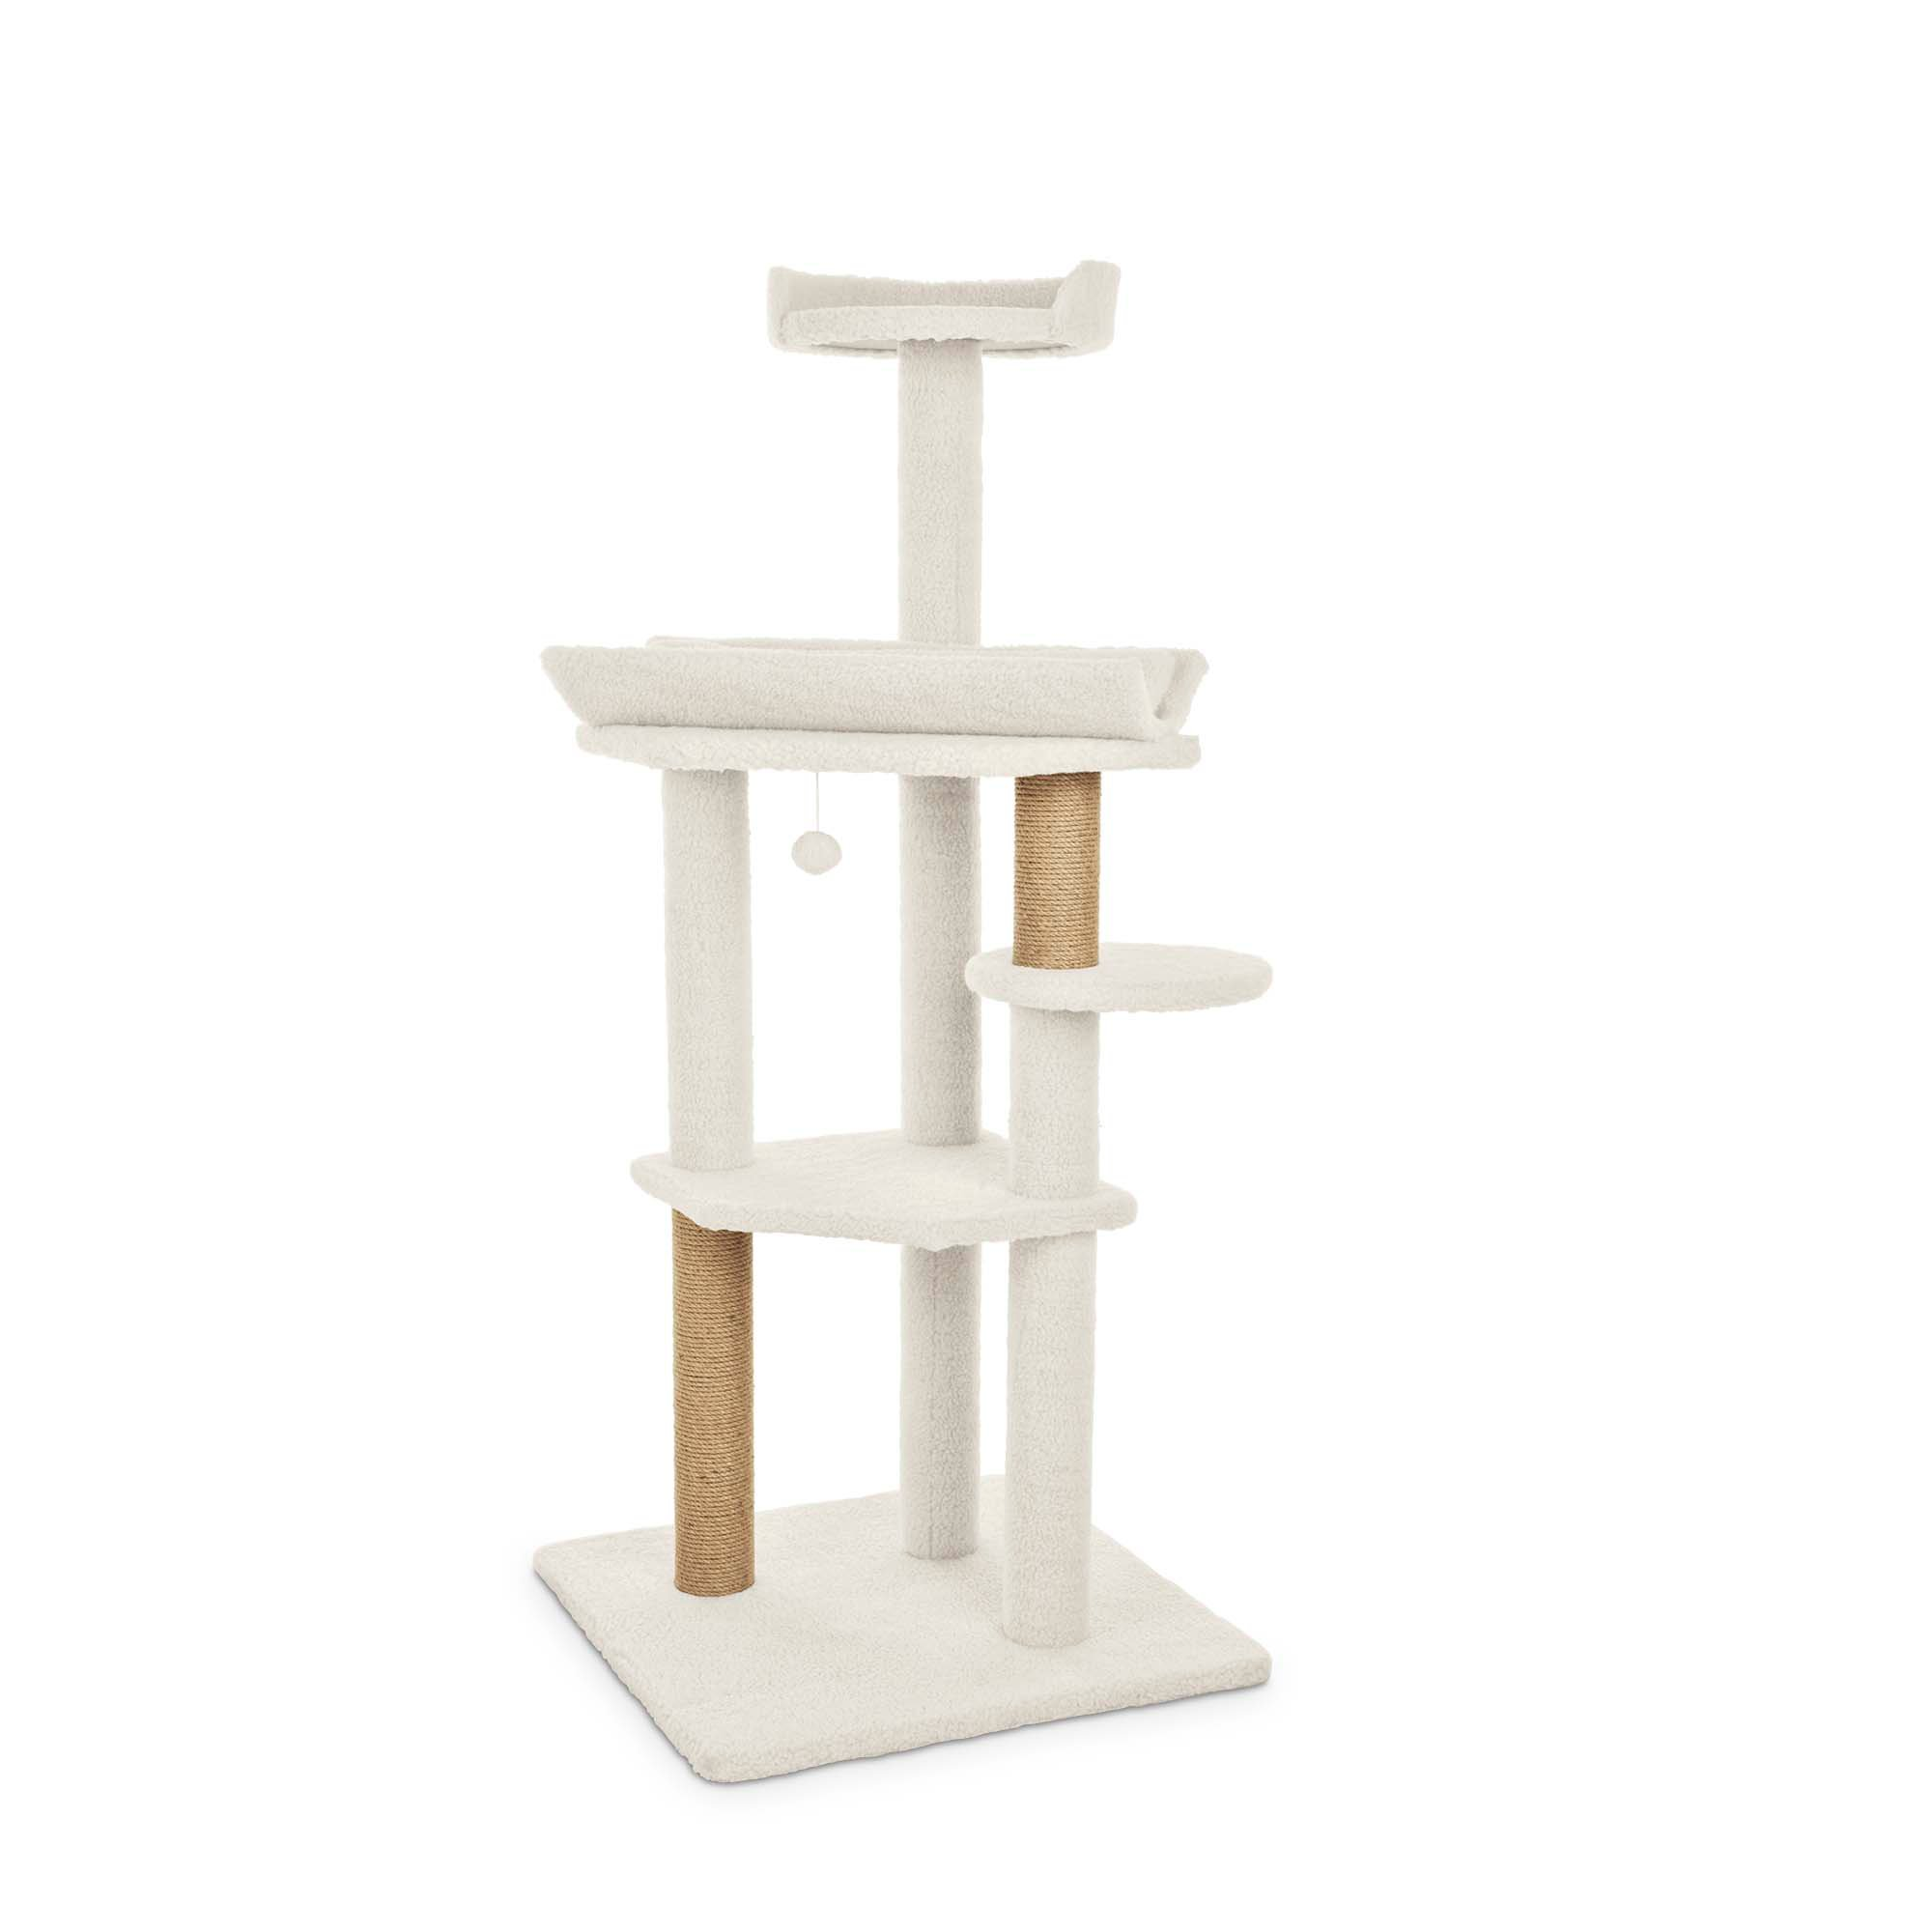 You & Me Feline High-Rise 4-Level Cat Tree | Petco | Tuggl